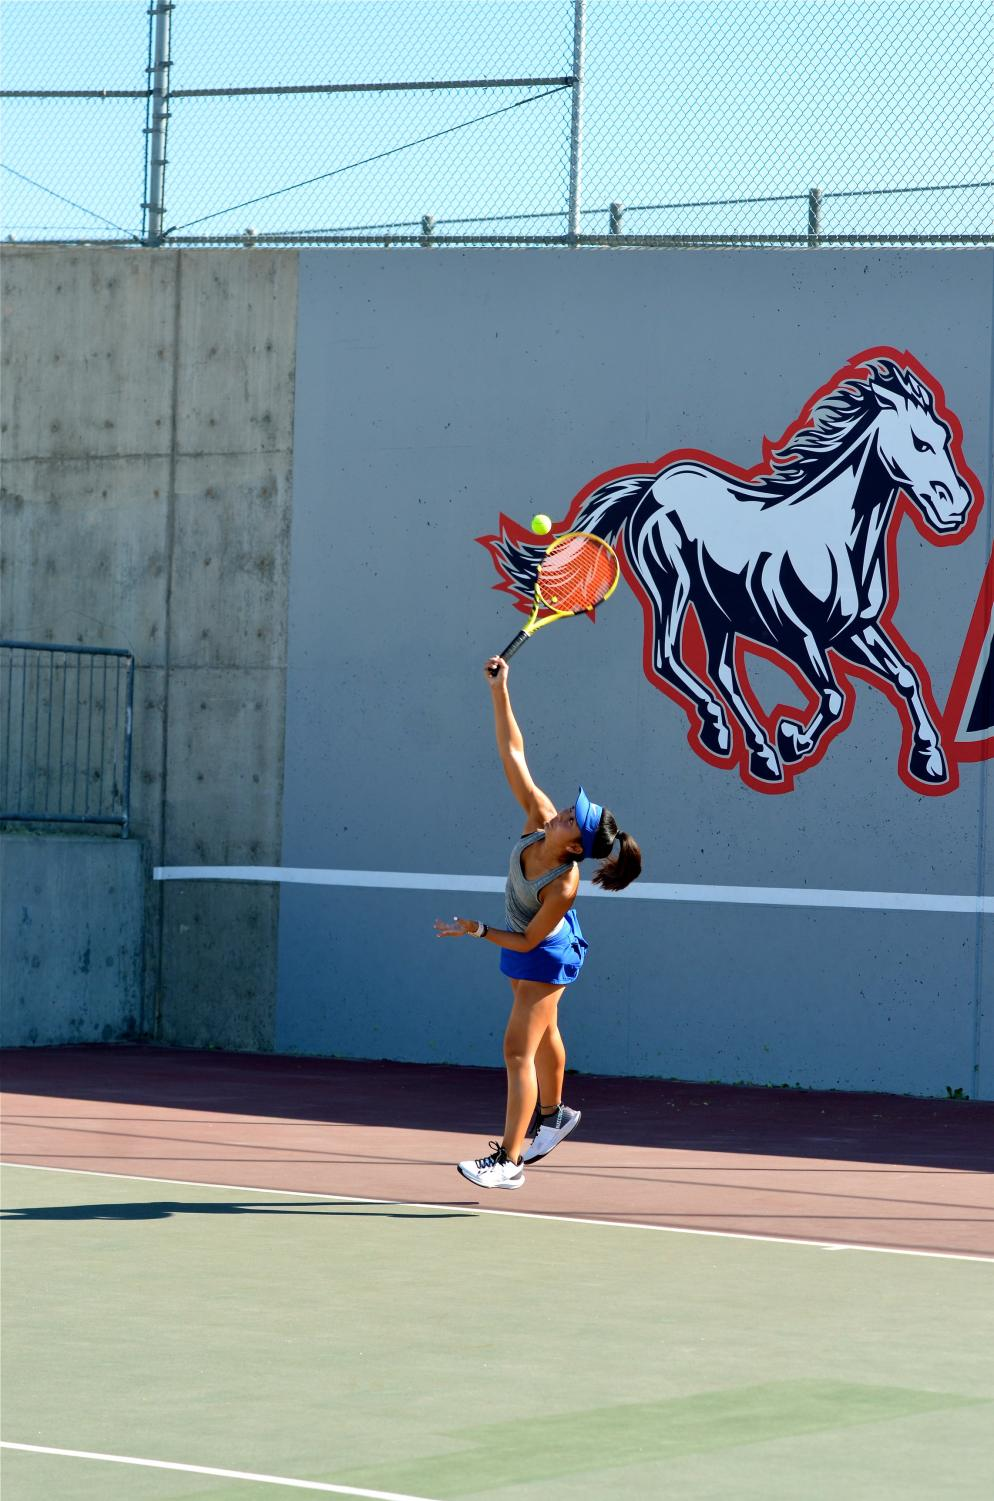 With confidence and pride, Brionna Nguyen (10) proves to have an exemplary approach as she serves to her opponent.